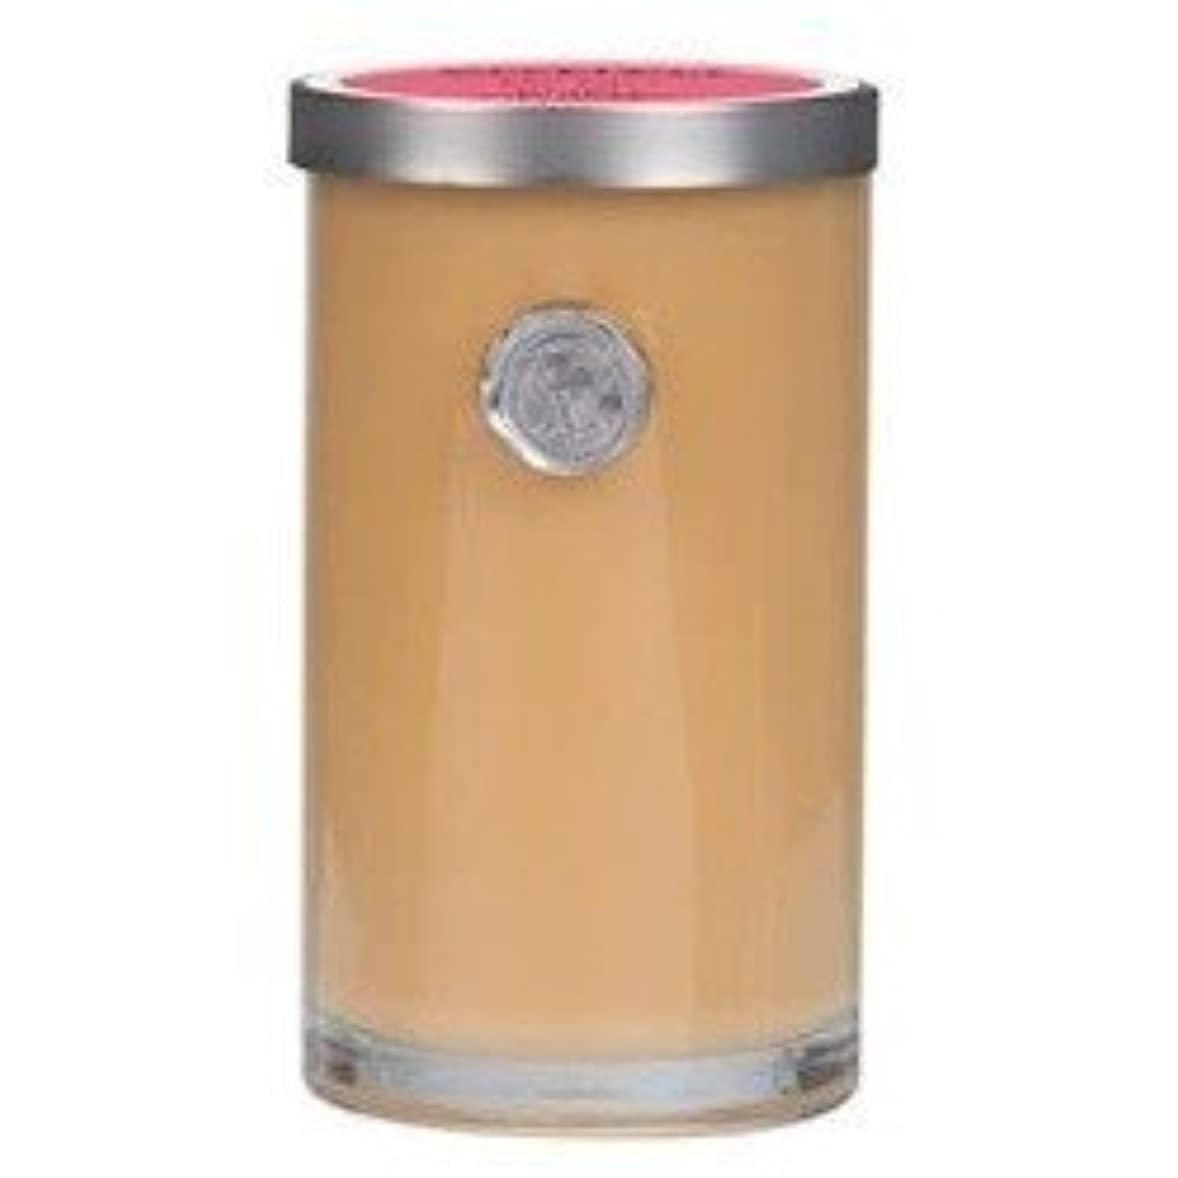 ロケットニックネーム最も遠いVOTIVO AROMATIC VOTIVE CANDLE RUSH OF ROSE